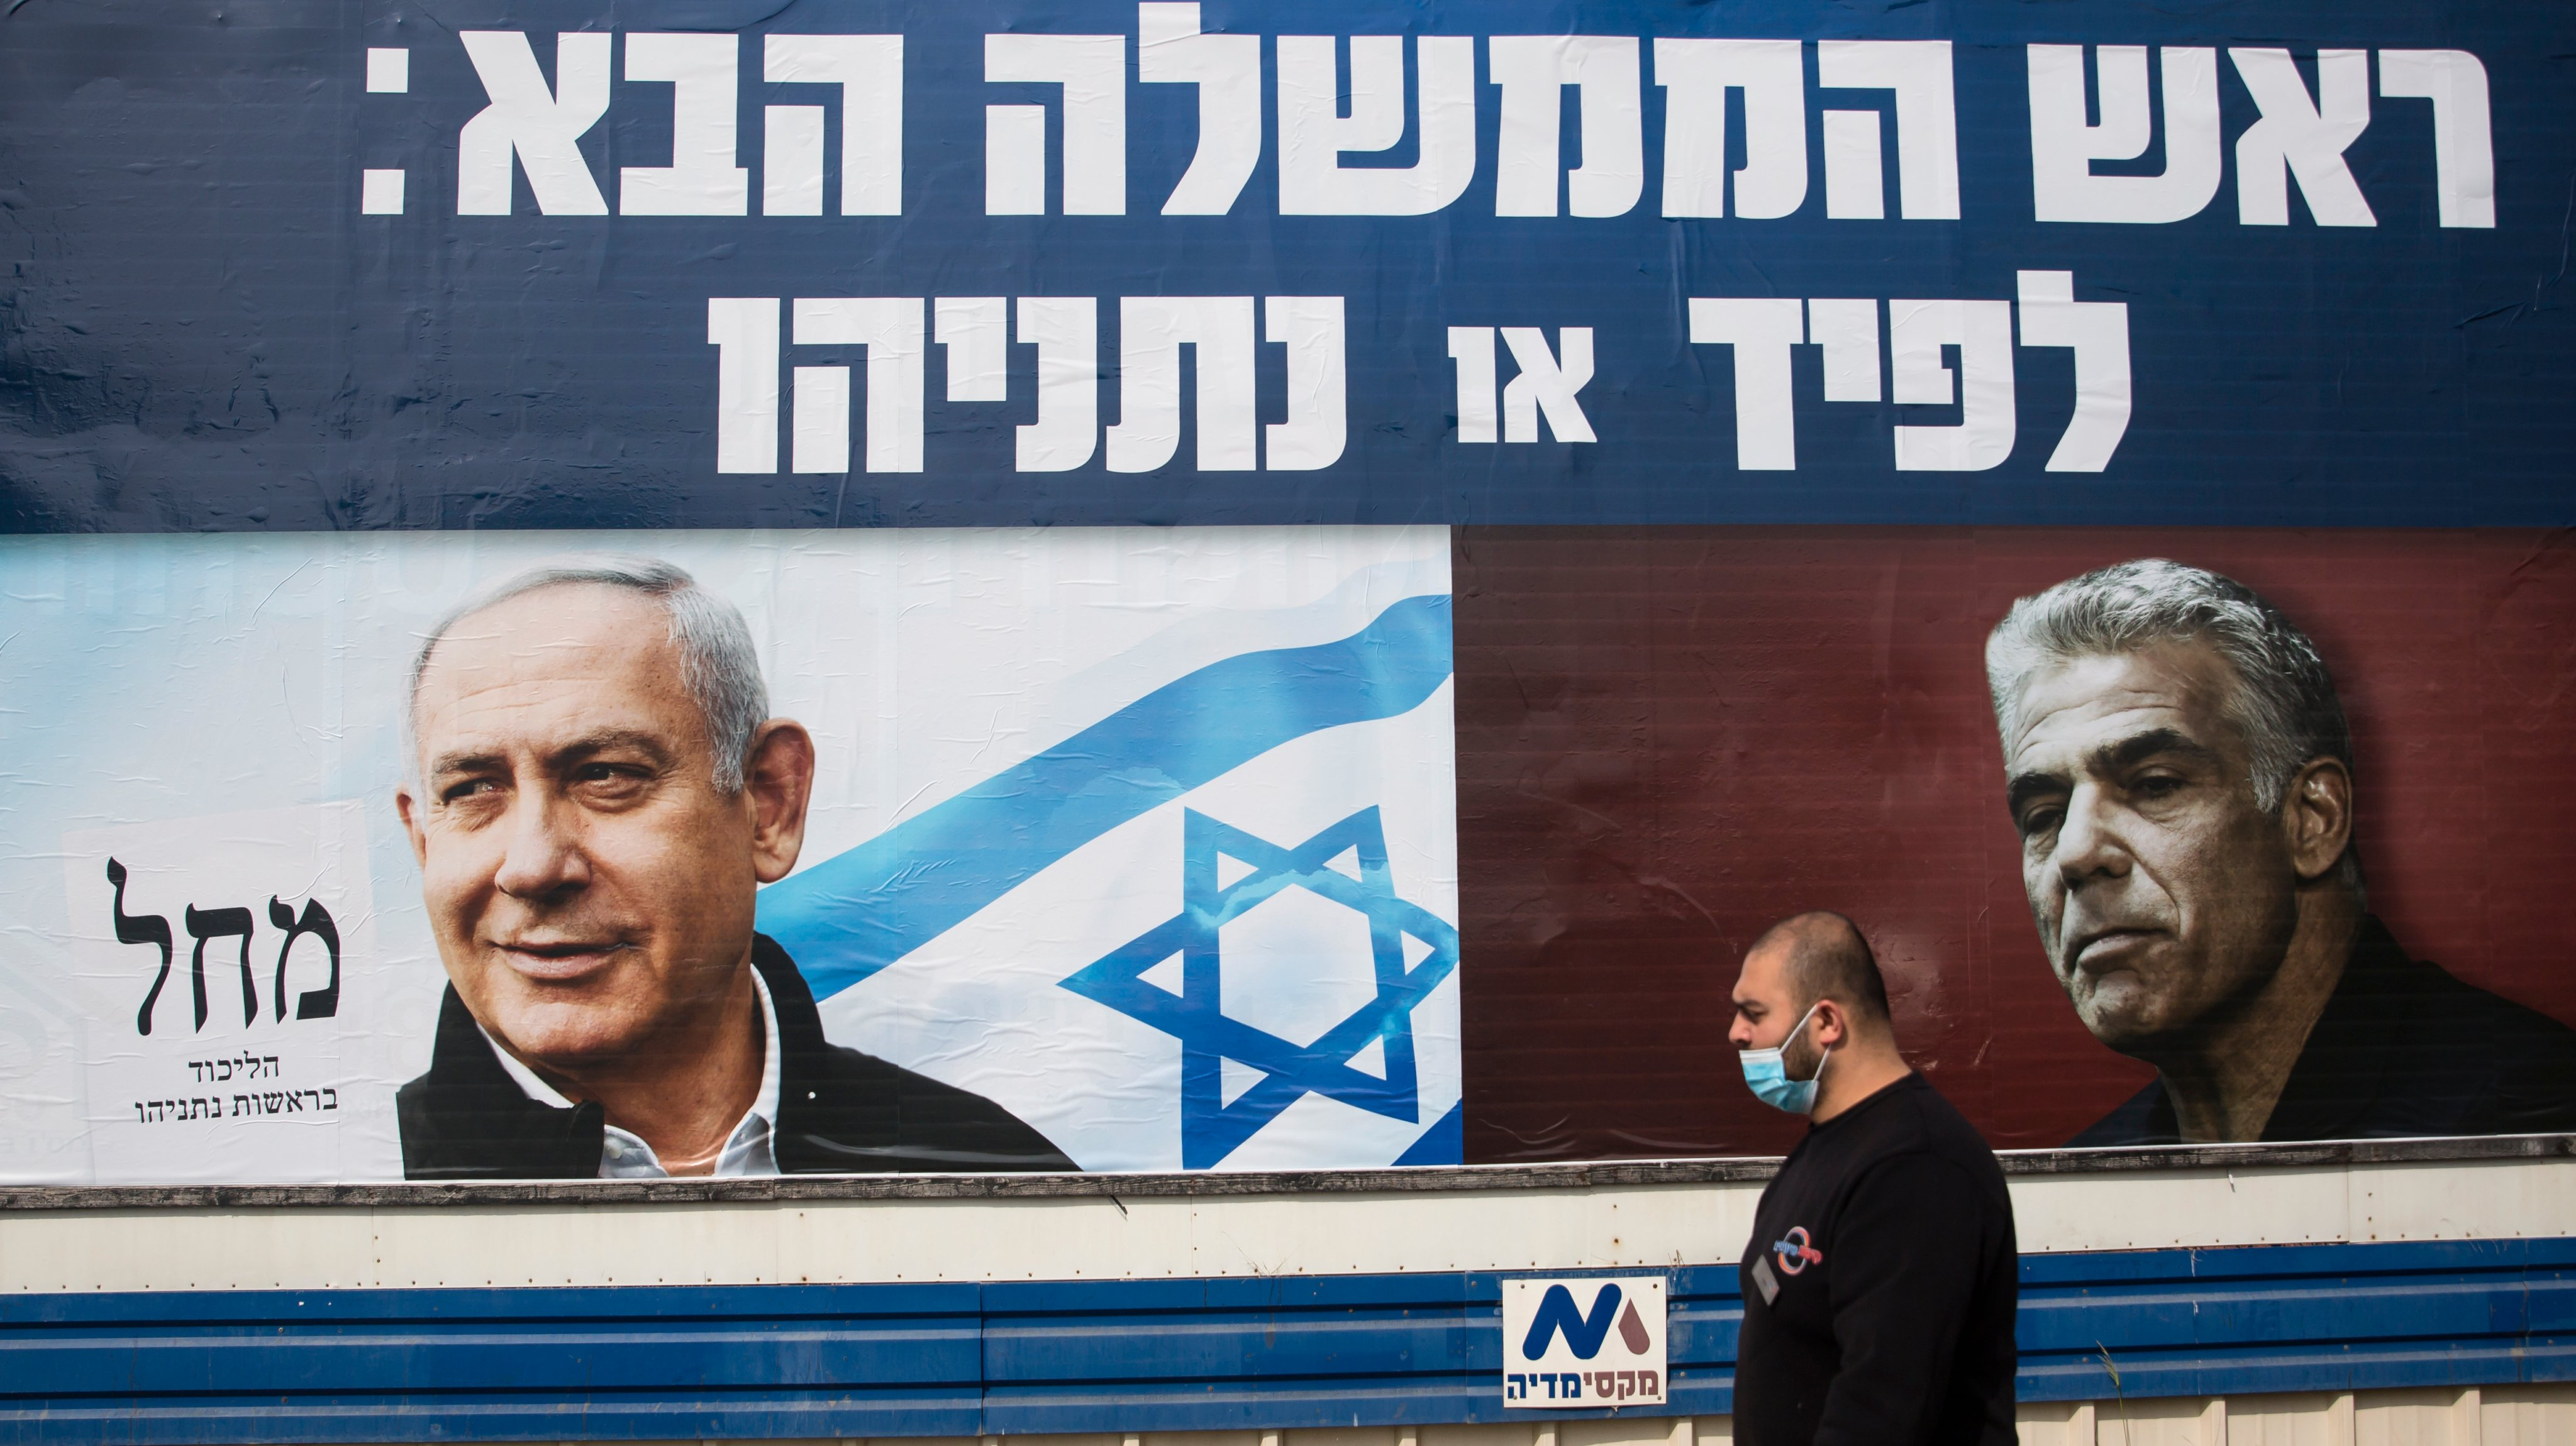 Campaign Posters Appear Ahead Of Israel's General Election